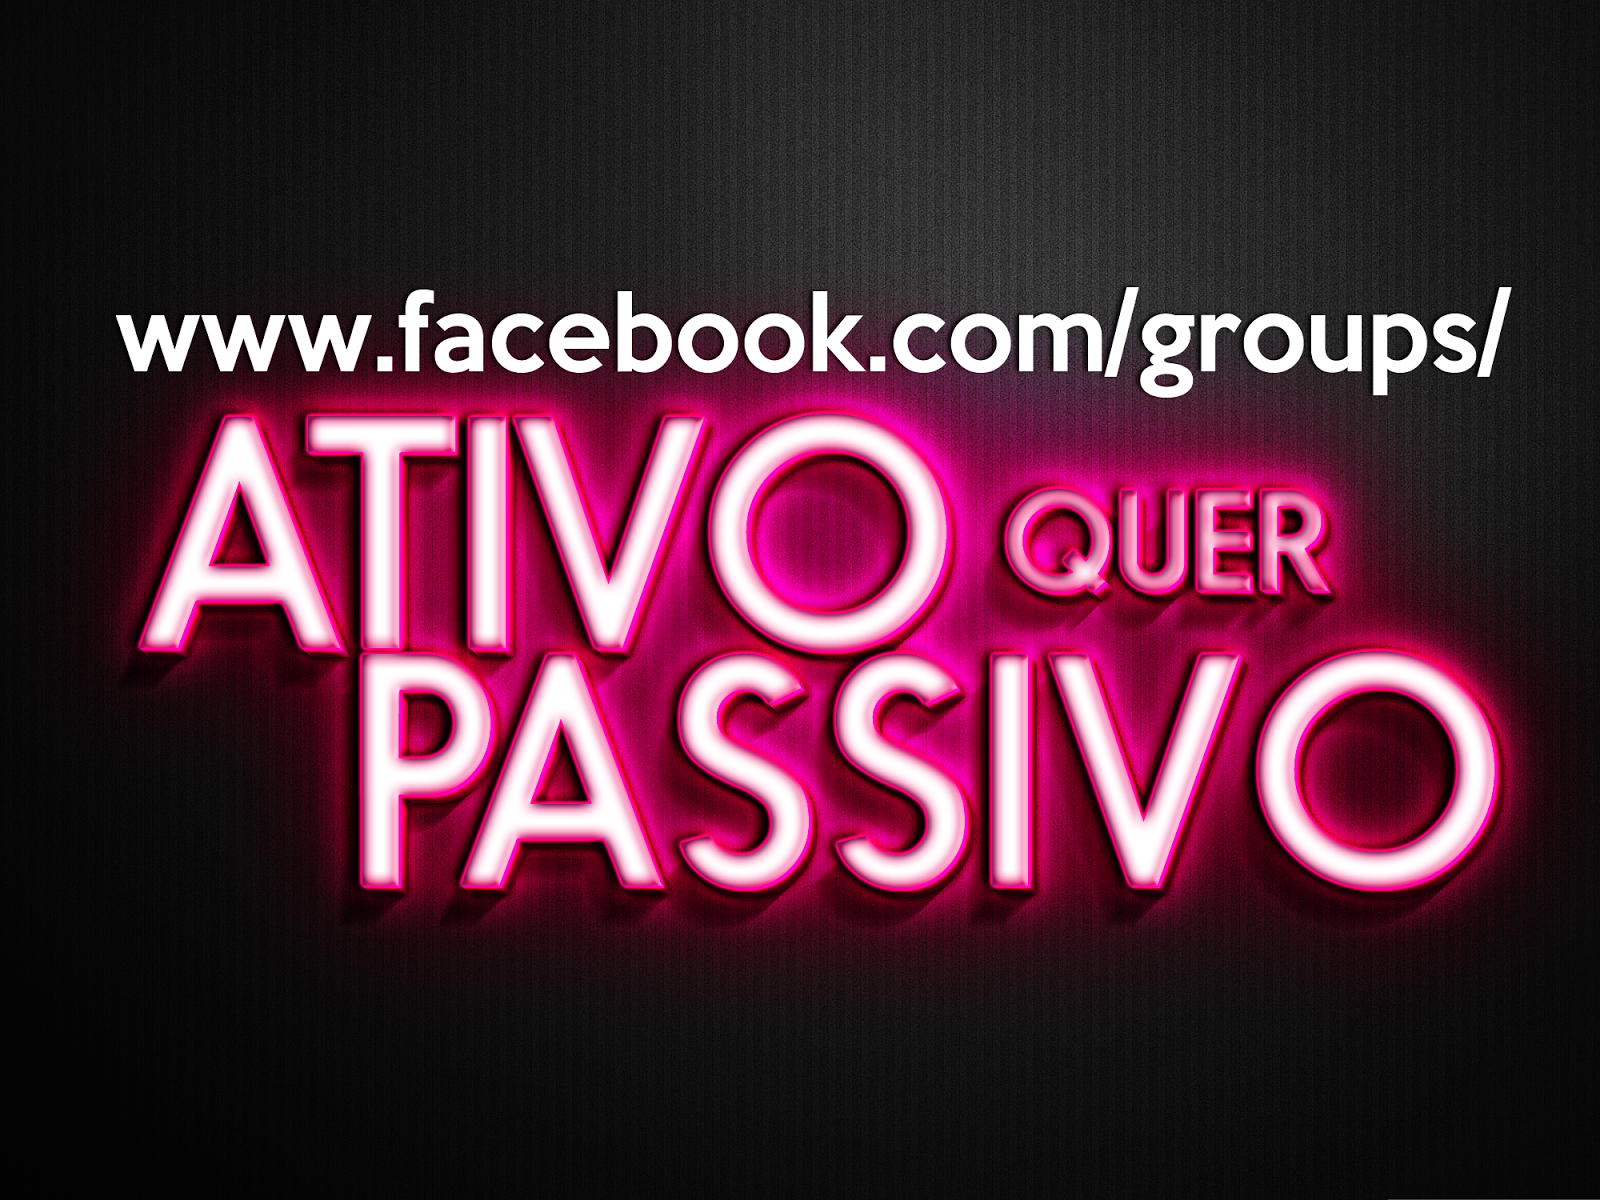 Grupo no Facebook!